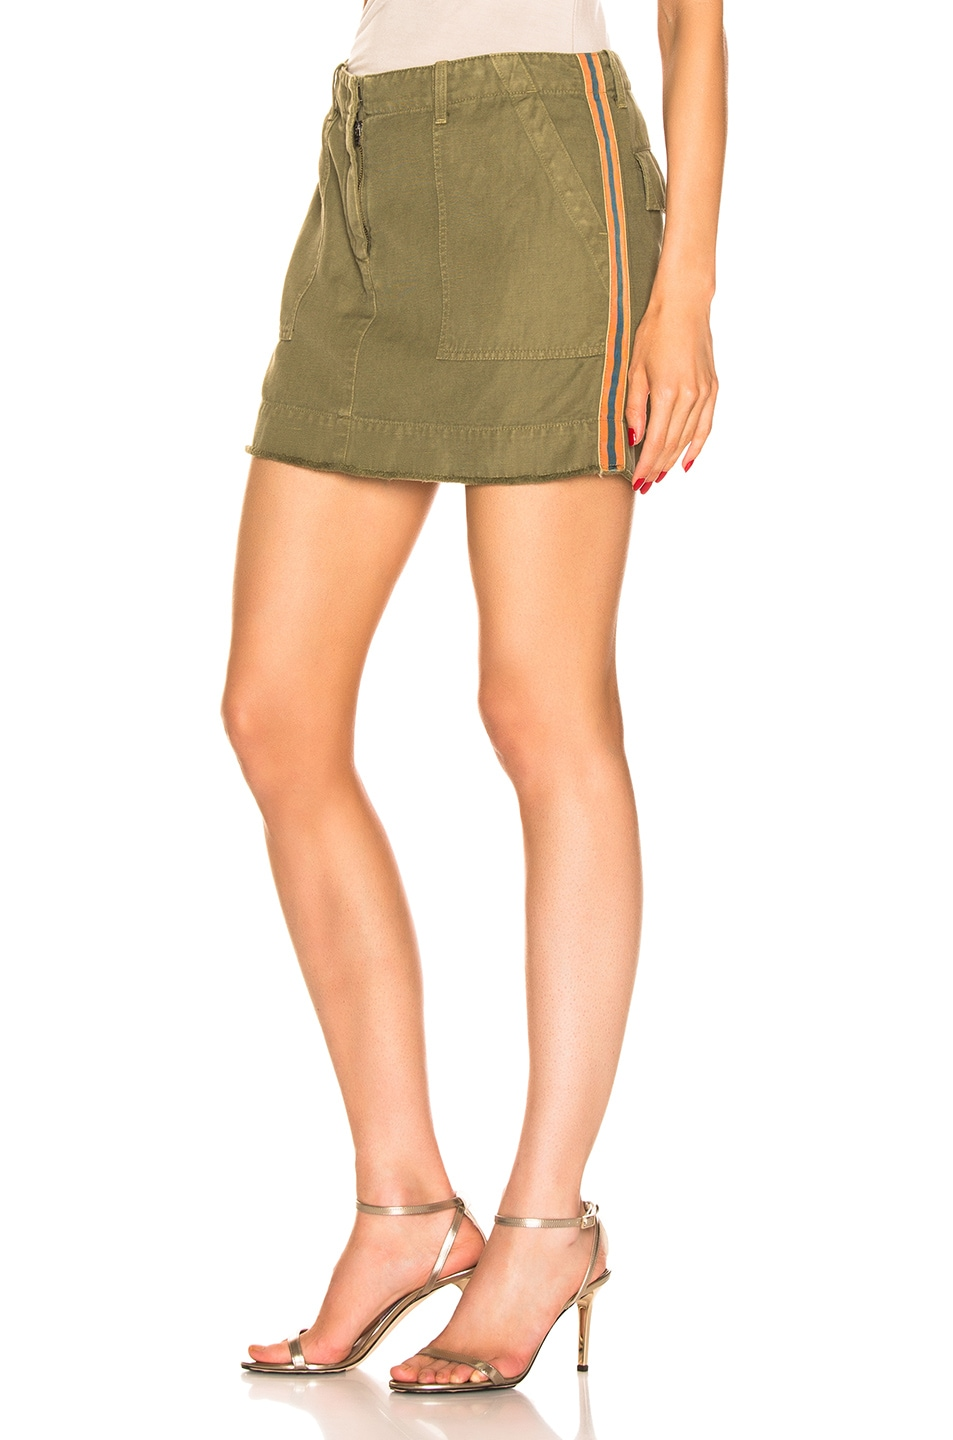 Image 1 of NILI LOTAN Ilona Skirt with Tape in Uniform Green, Orange, & Navy Blue